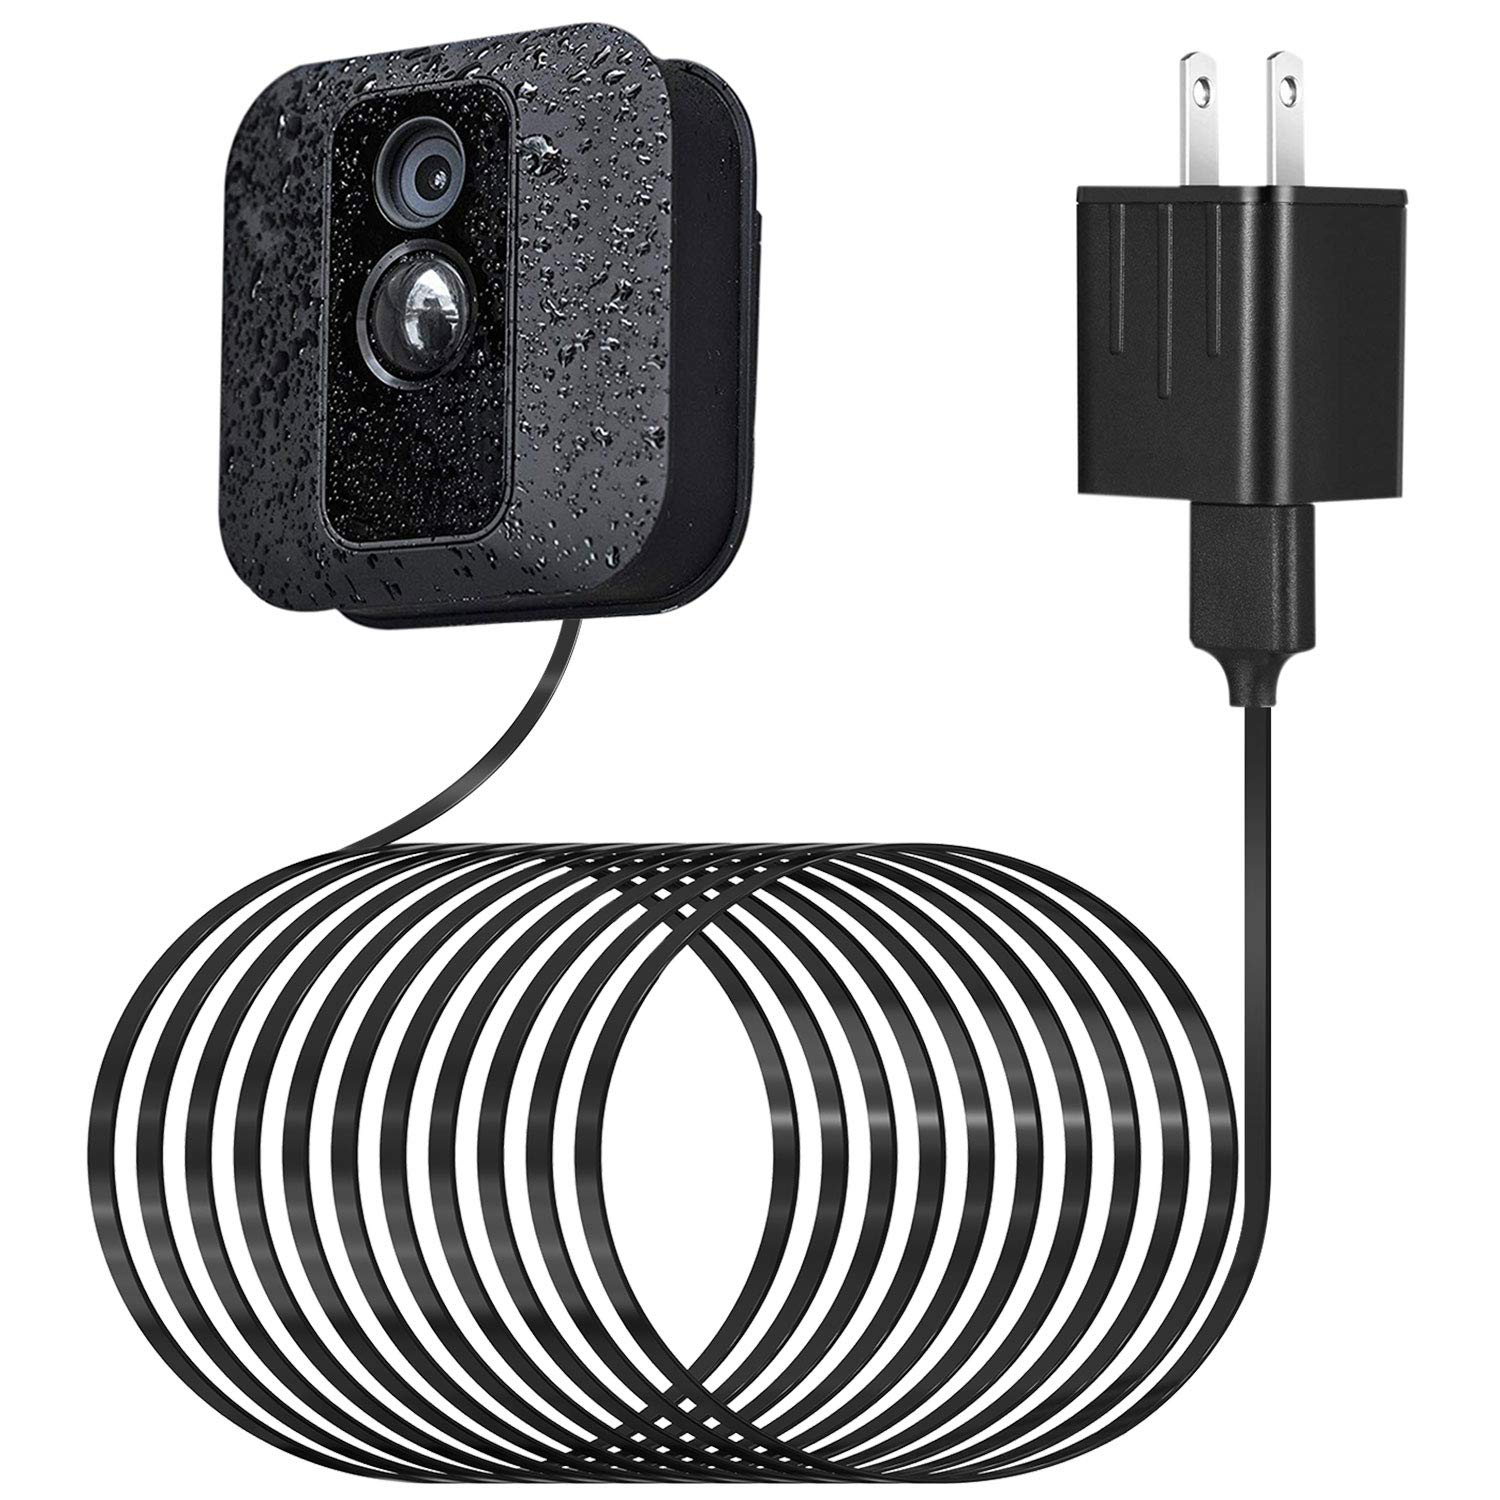 Power Adapter for Blink XT XT2 Outdoor & Indoor Camera, with 25 ft/7.5 m Weatherproof Cable Continuously Charging Blink Camera, No More Battery Changes - Black by ALERTCAM